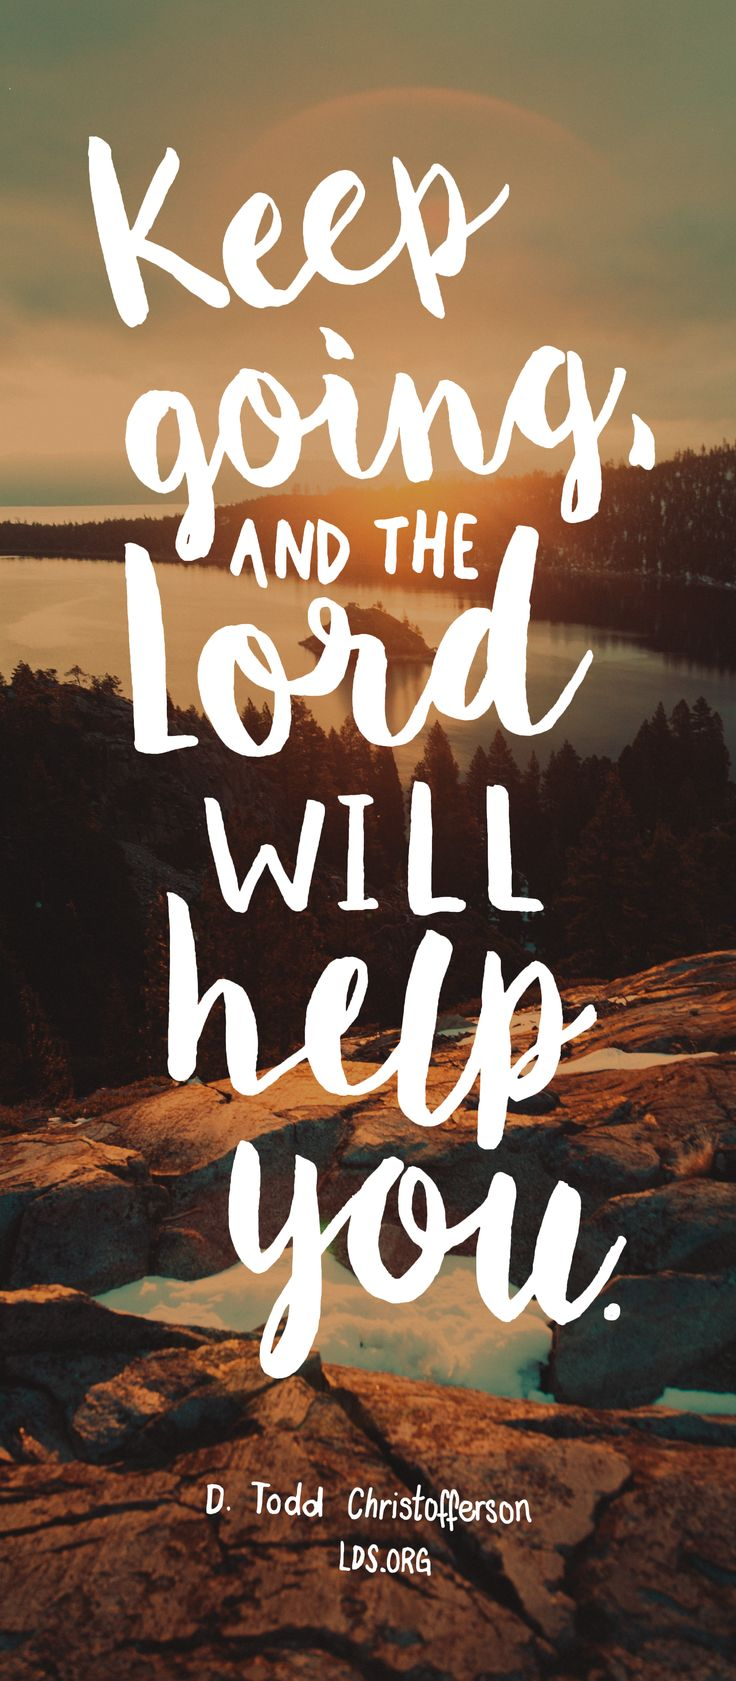 Strength Quotes From The Bible Keep Going And The Lord Will Help Youdtodd Christofferson